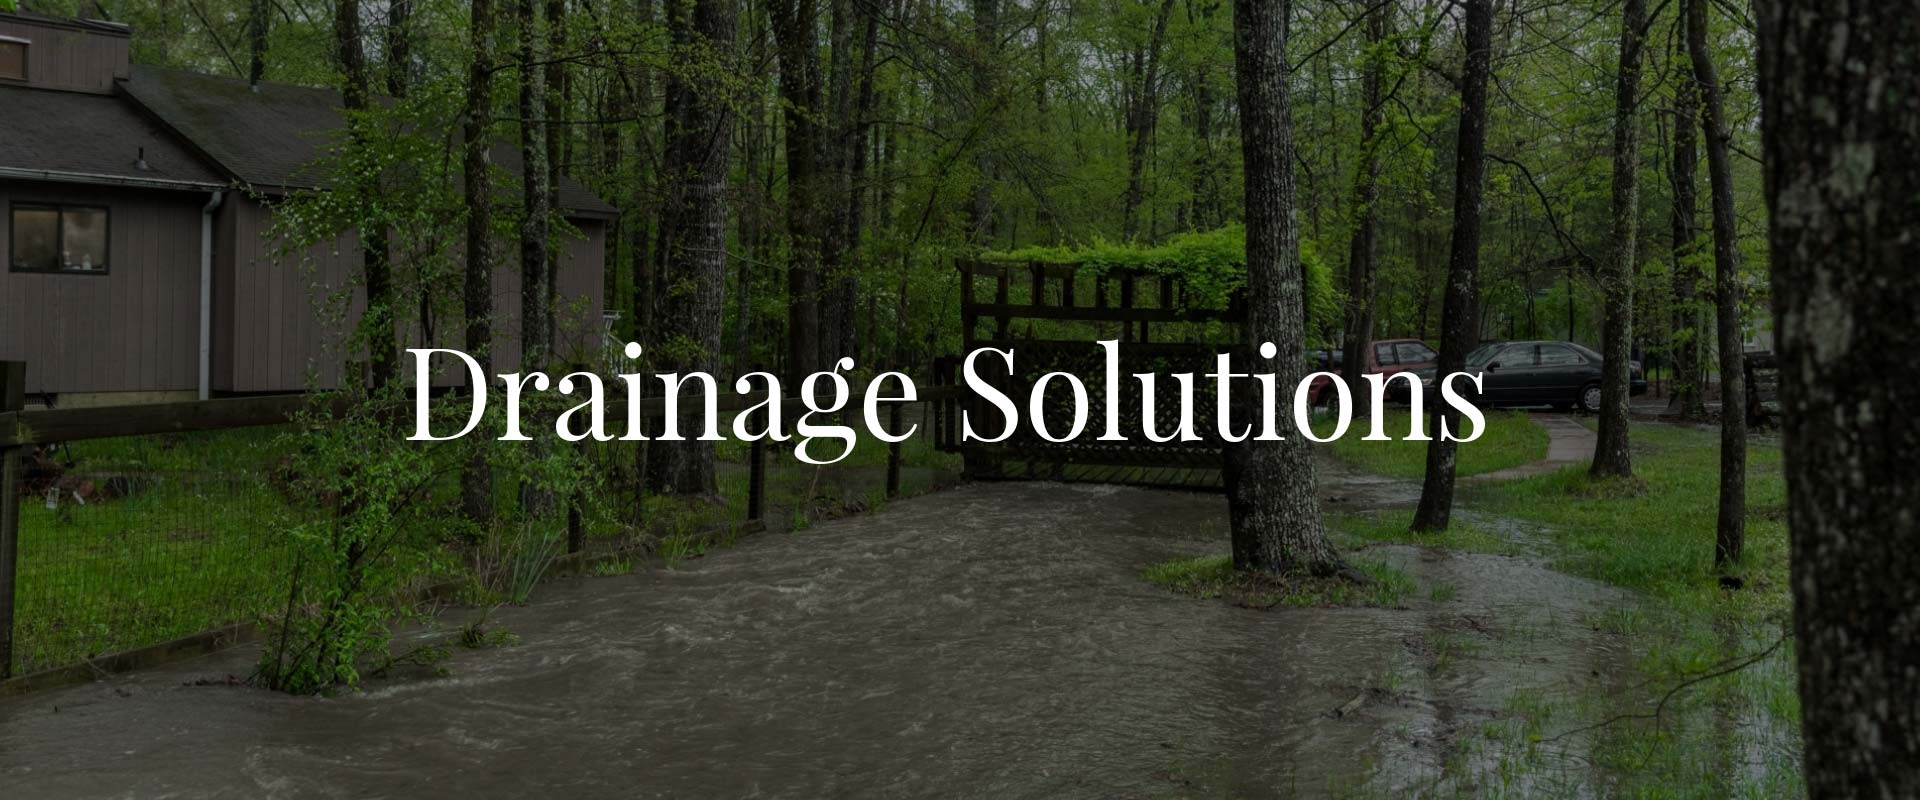 drainage-solutions-header